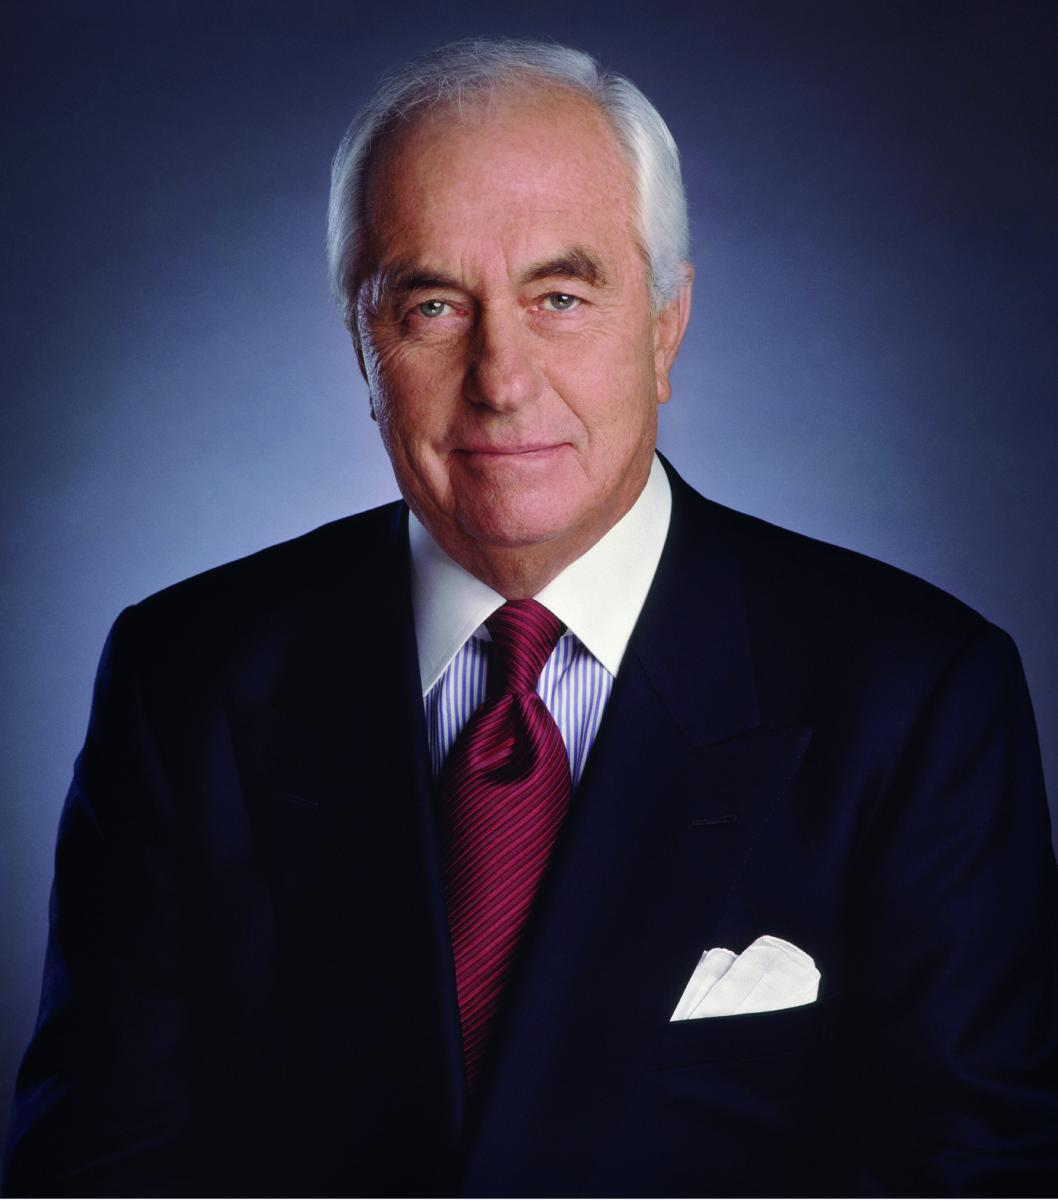 Roger Penske, Chairman of Penske Corporation